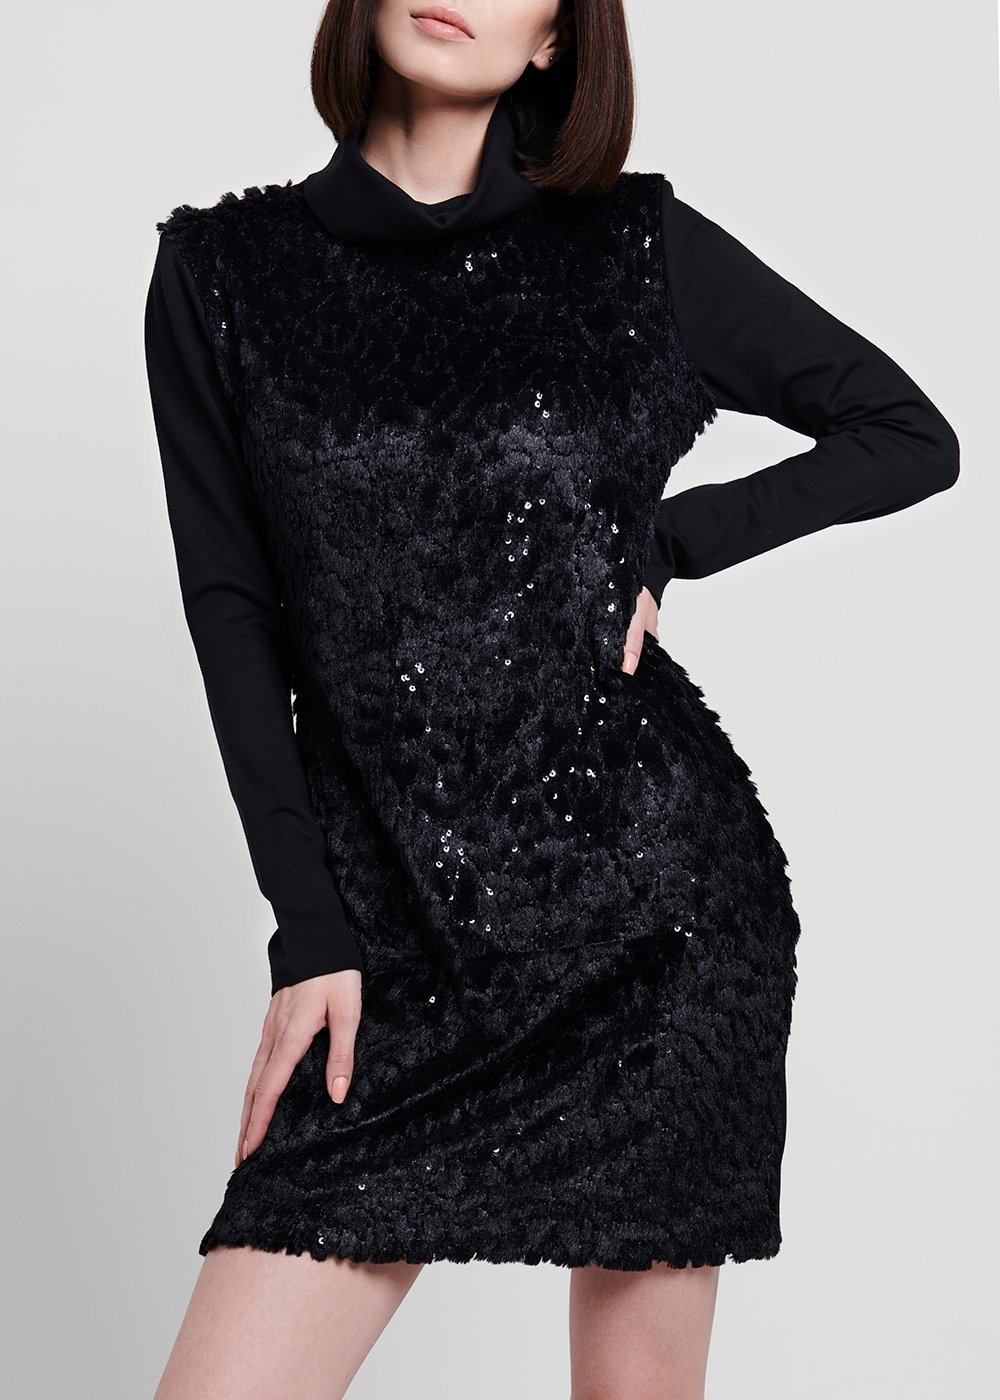 Dress in milano stitch with faux - fur panel - Black - Woman